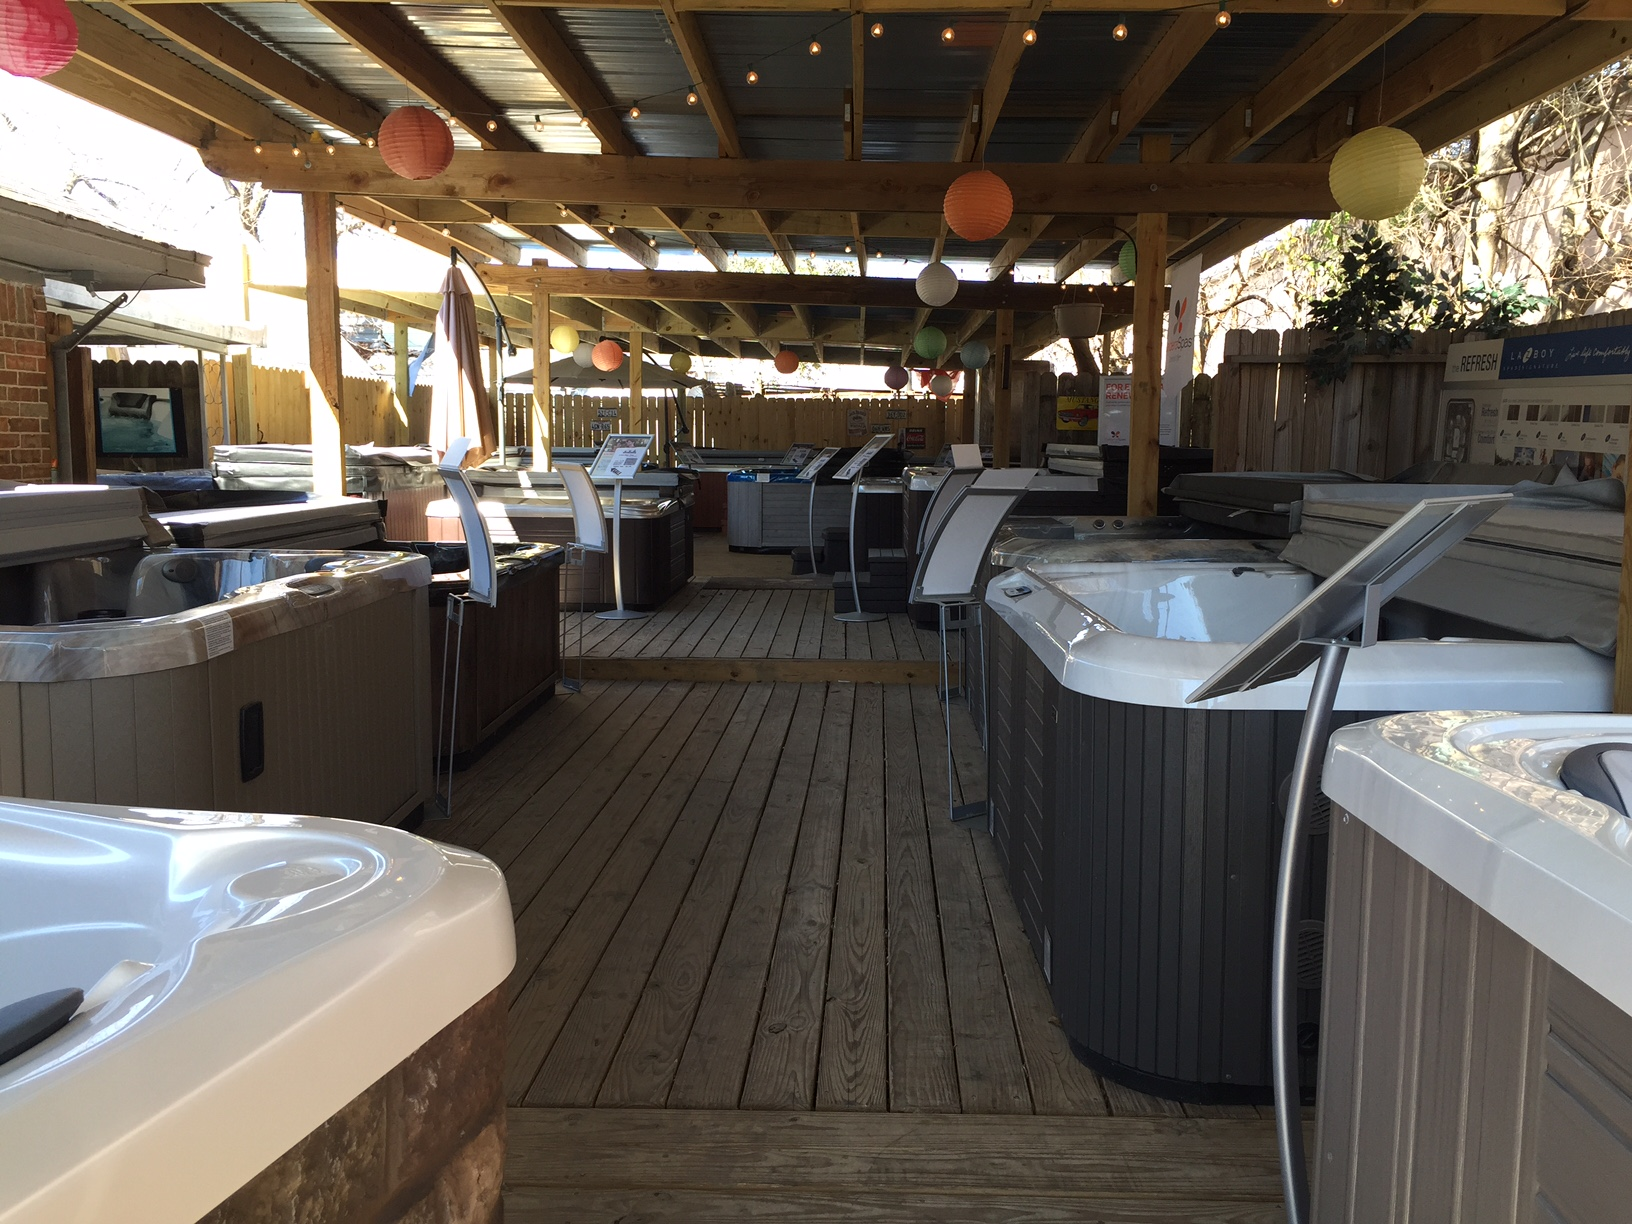 Spa inspectors hot tub sales and pool spa repair for Local spas near me